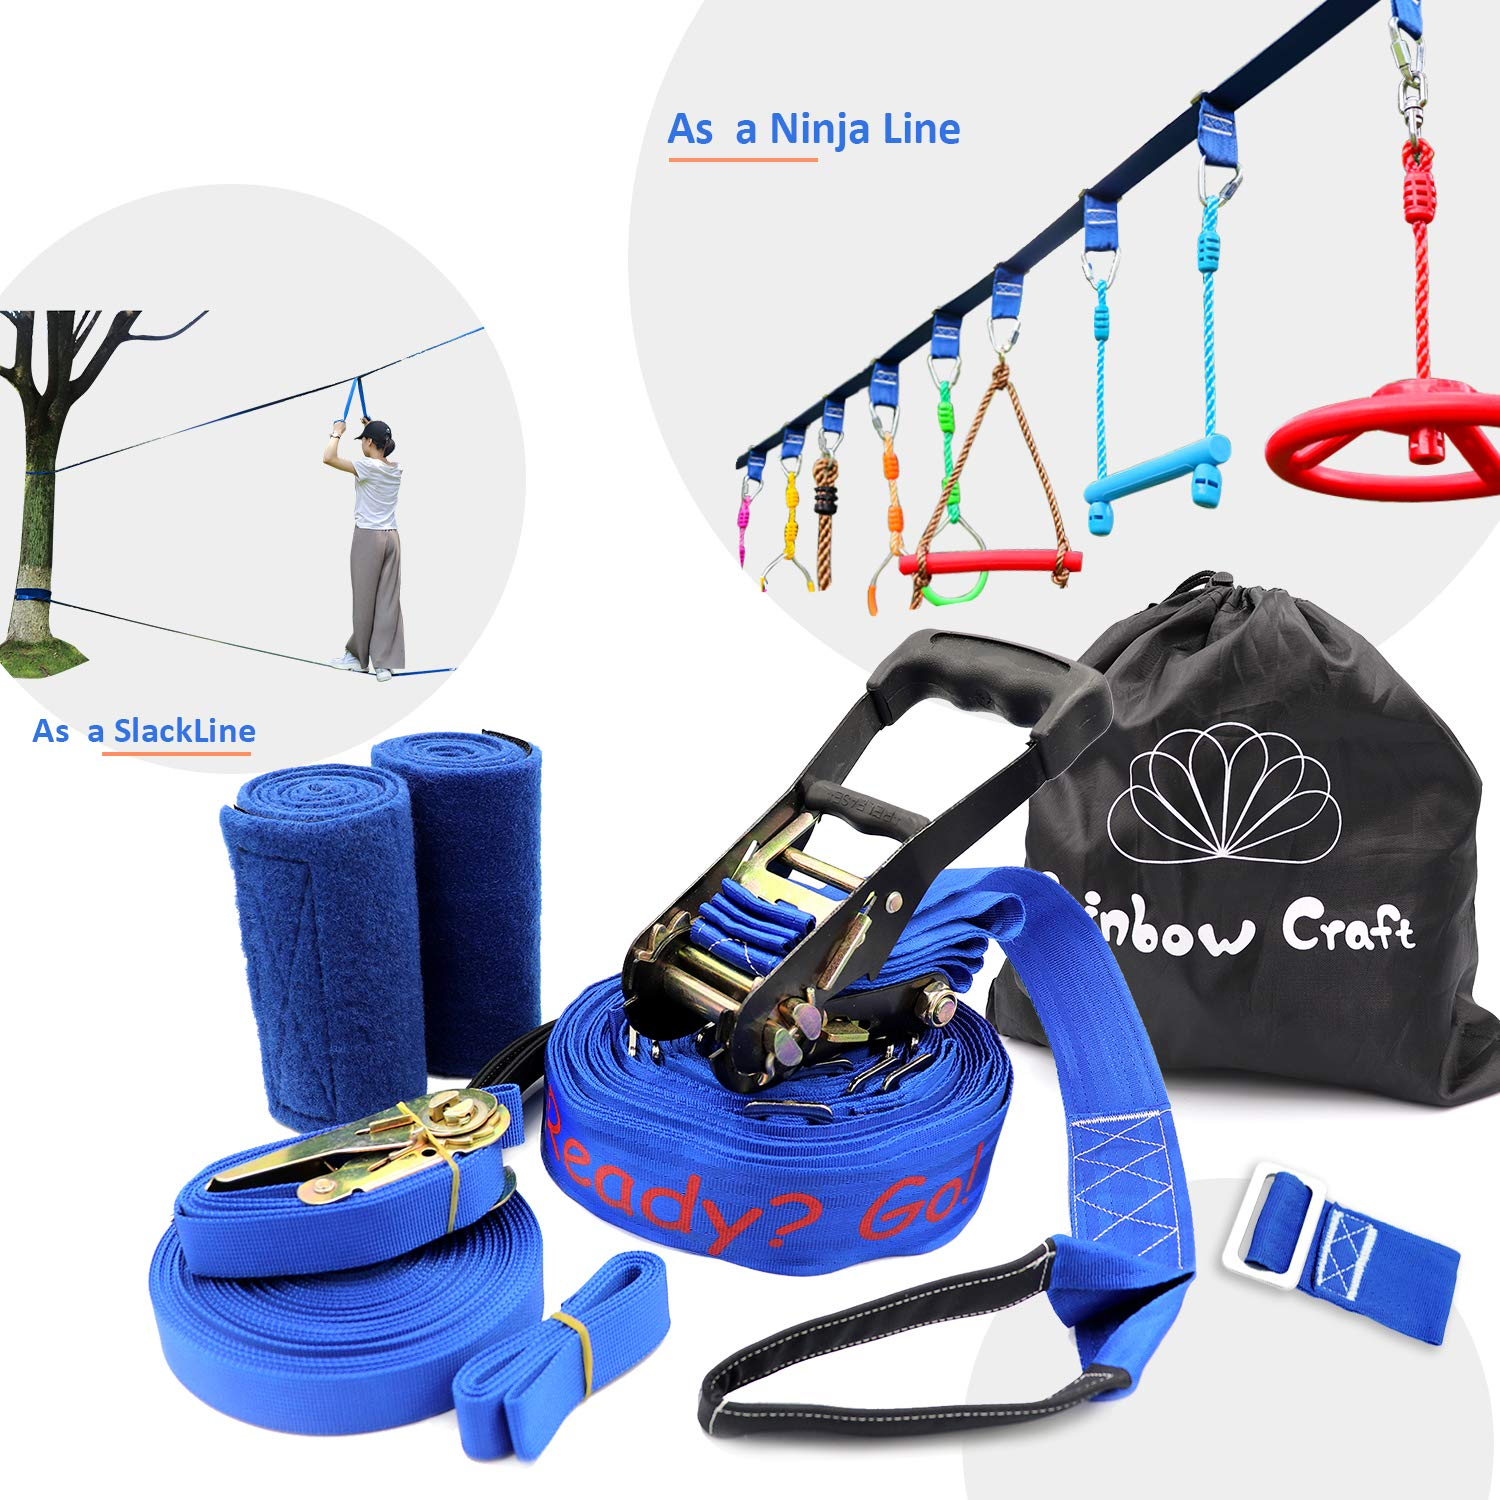 Rainbow Craft Ninjaline Slackline for Obstacle Course Set, with Removable Loops for Kids Backyard Outdoor Play - Printing Ninja Line Type